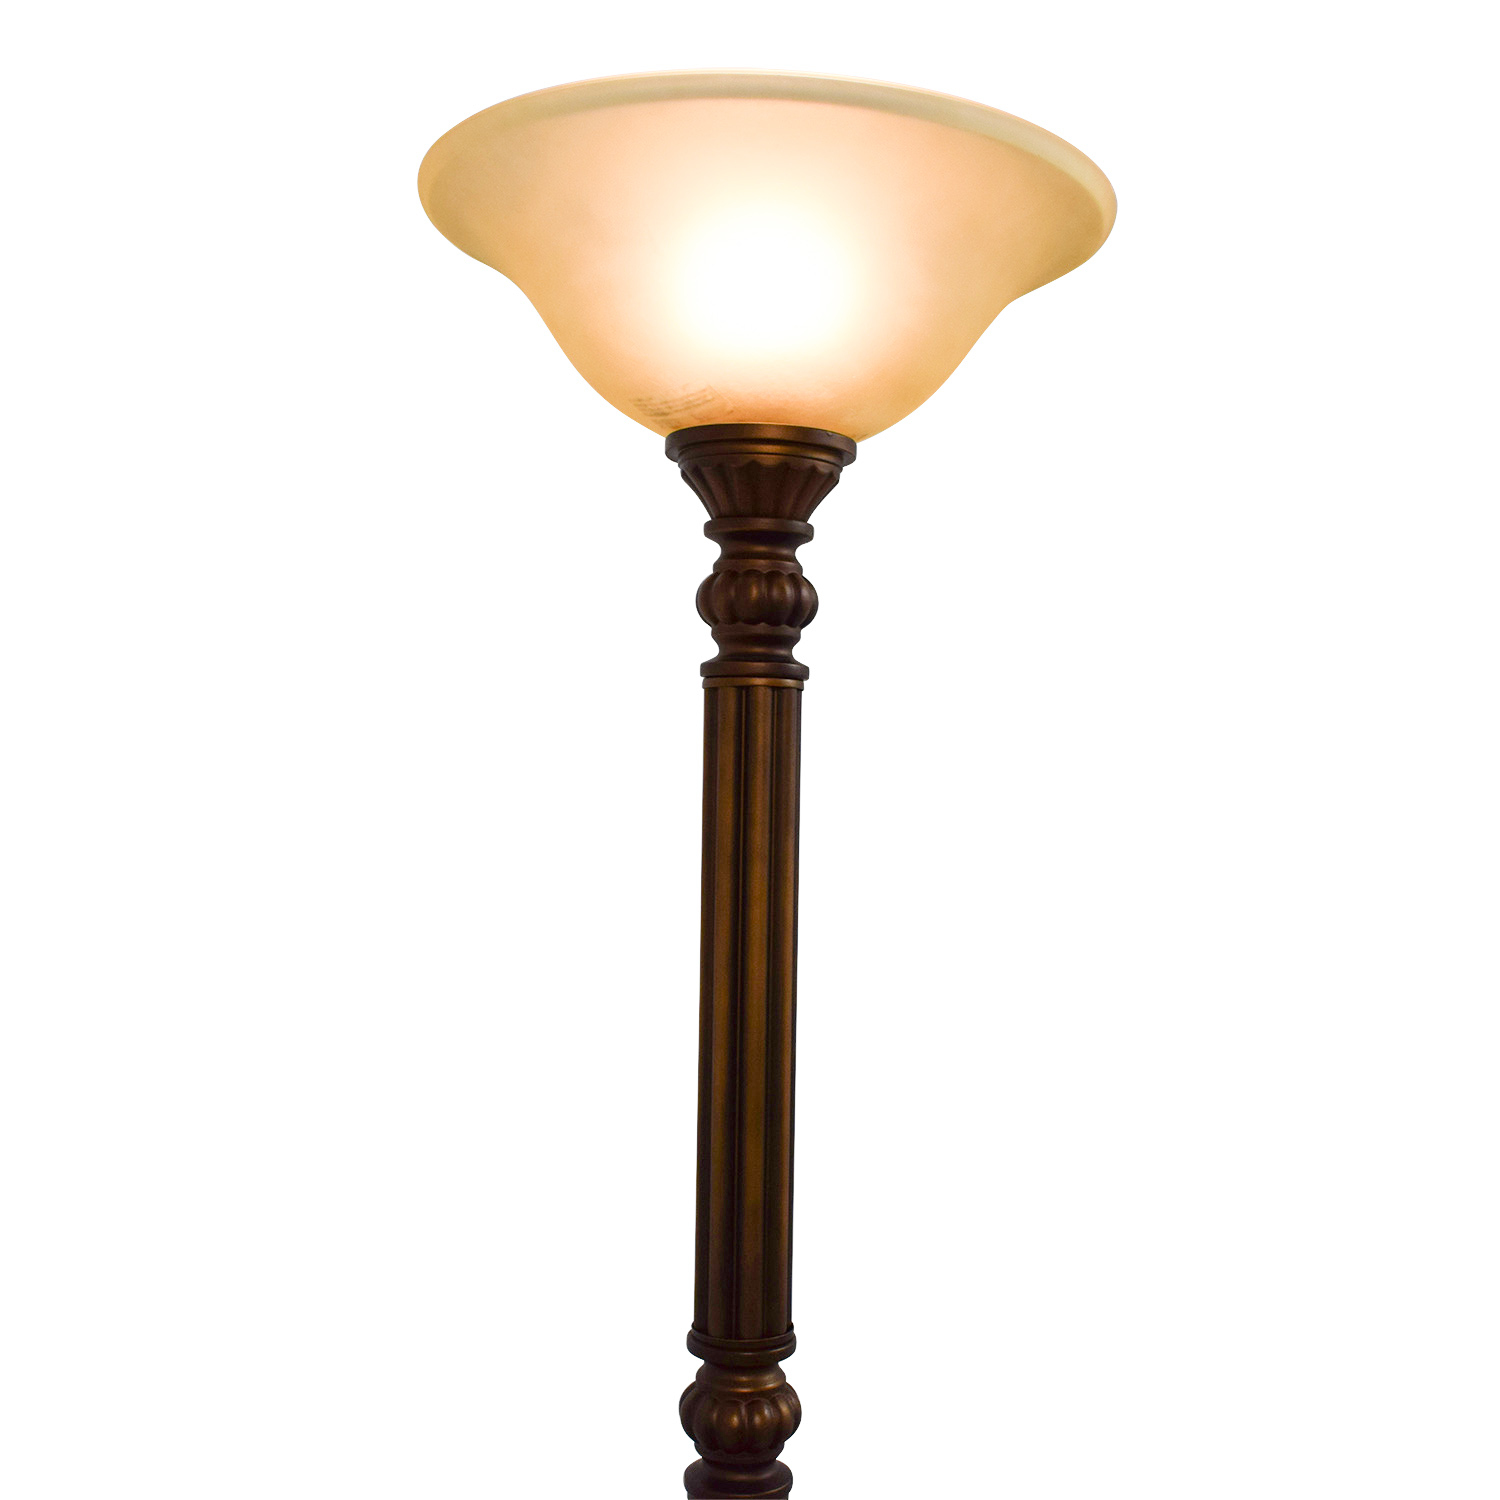 45 Off Bronze Floor Lamp Decor